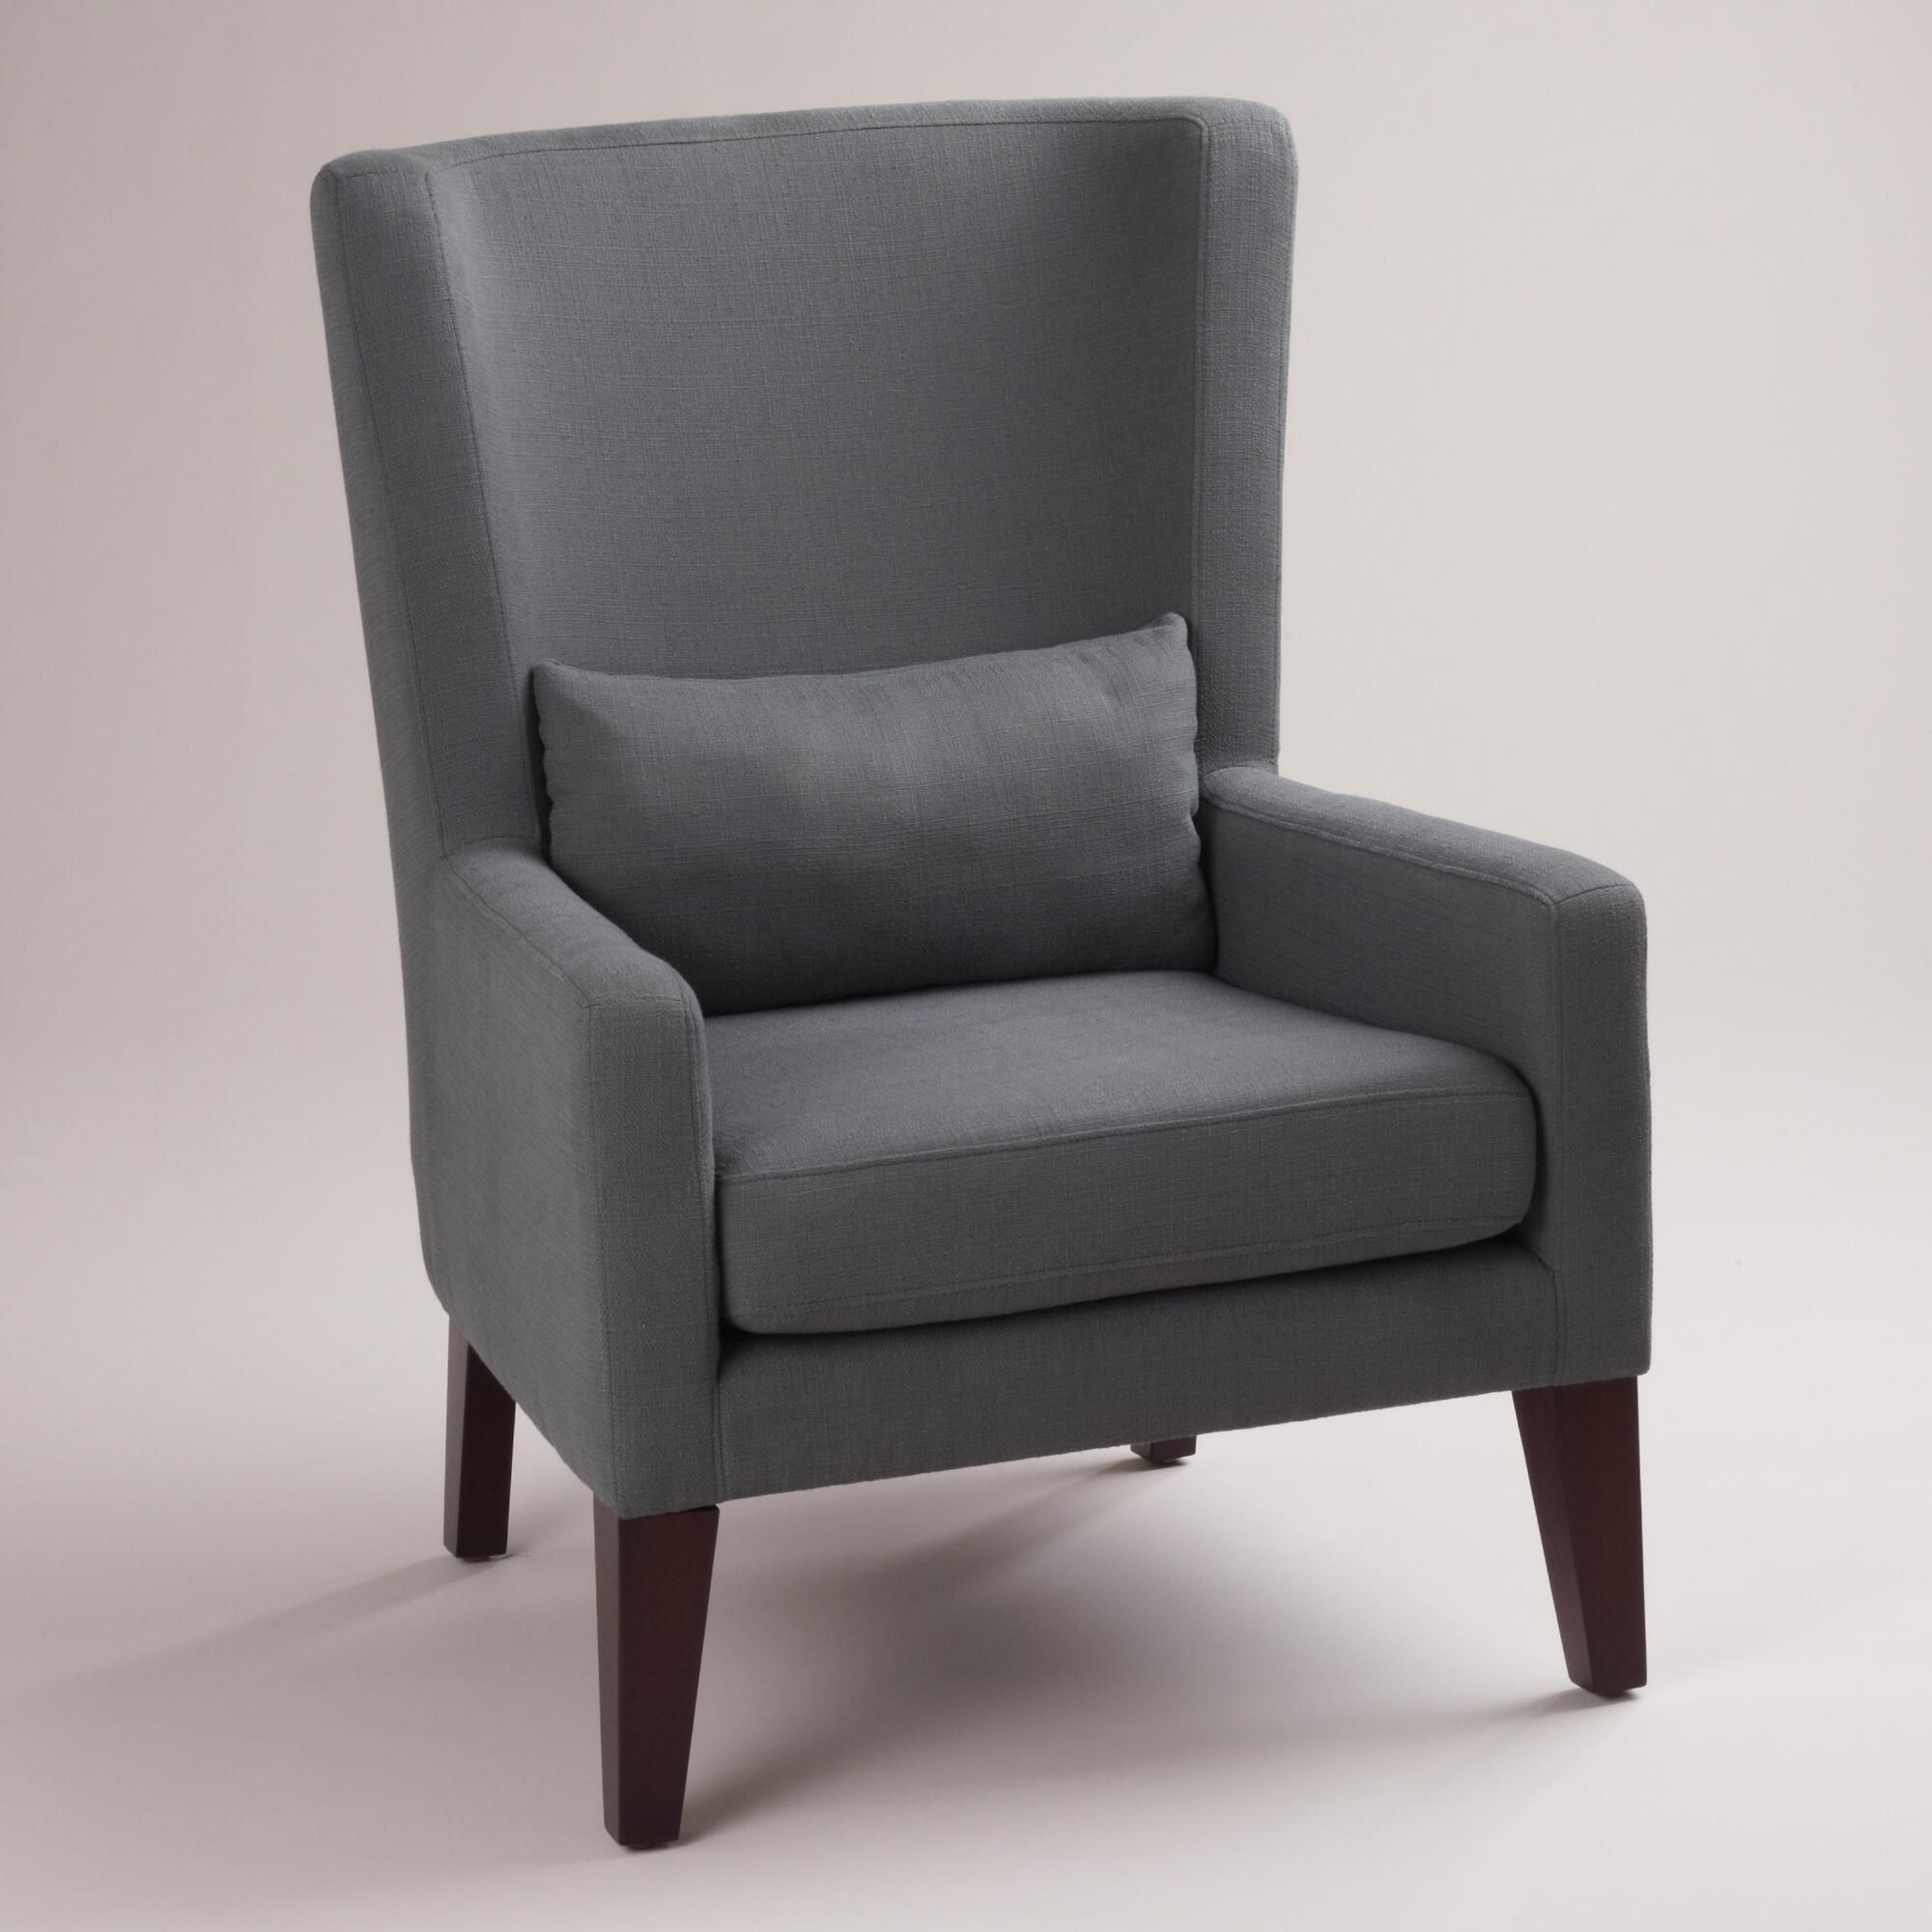 Dove Gray Triton High Back Chair | High Back Chairs, Living With Regard To Allis Tufted Polyester Blend Wingback Chairs (View 6 of 15)